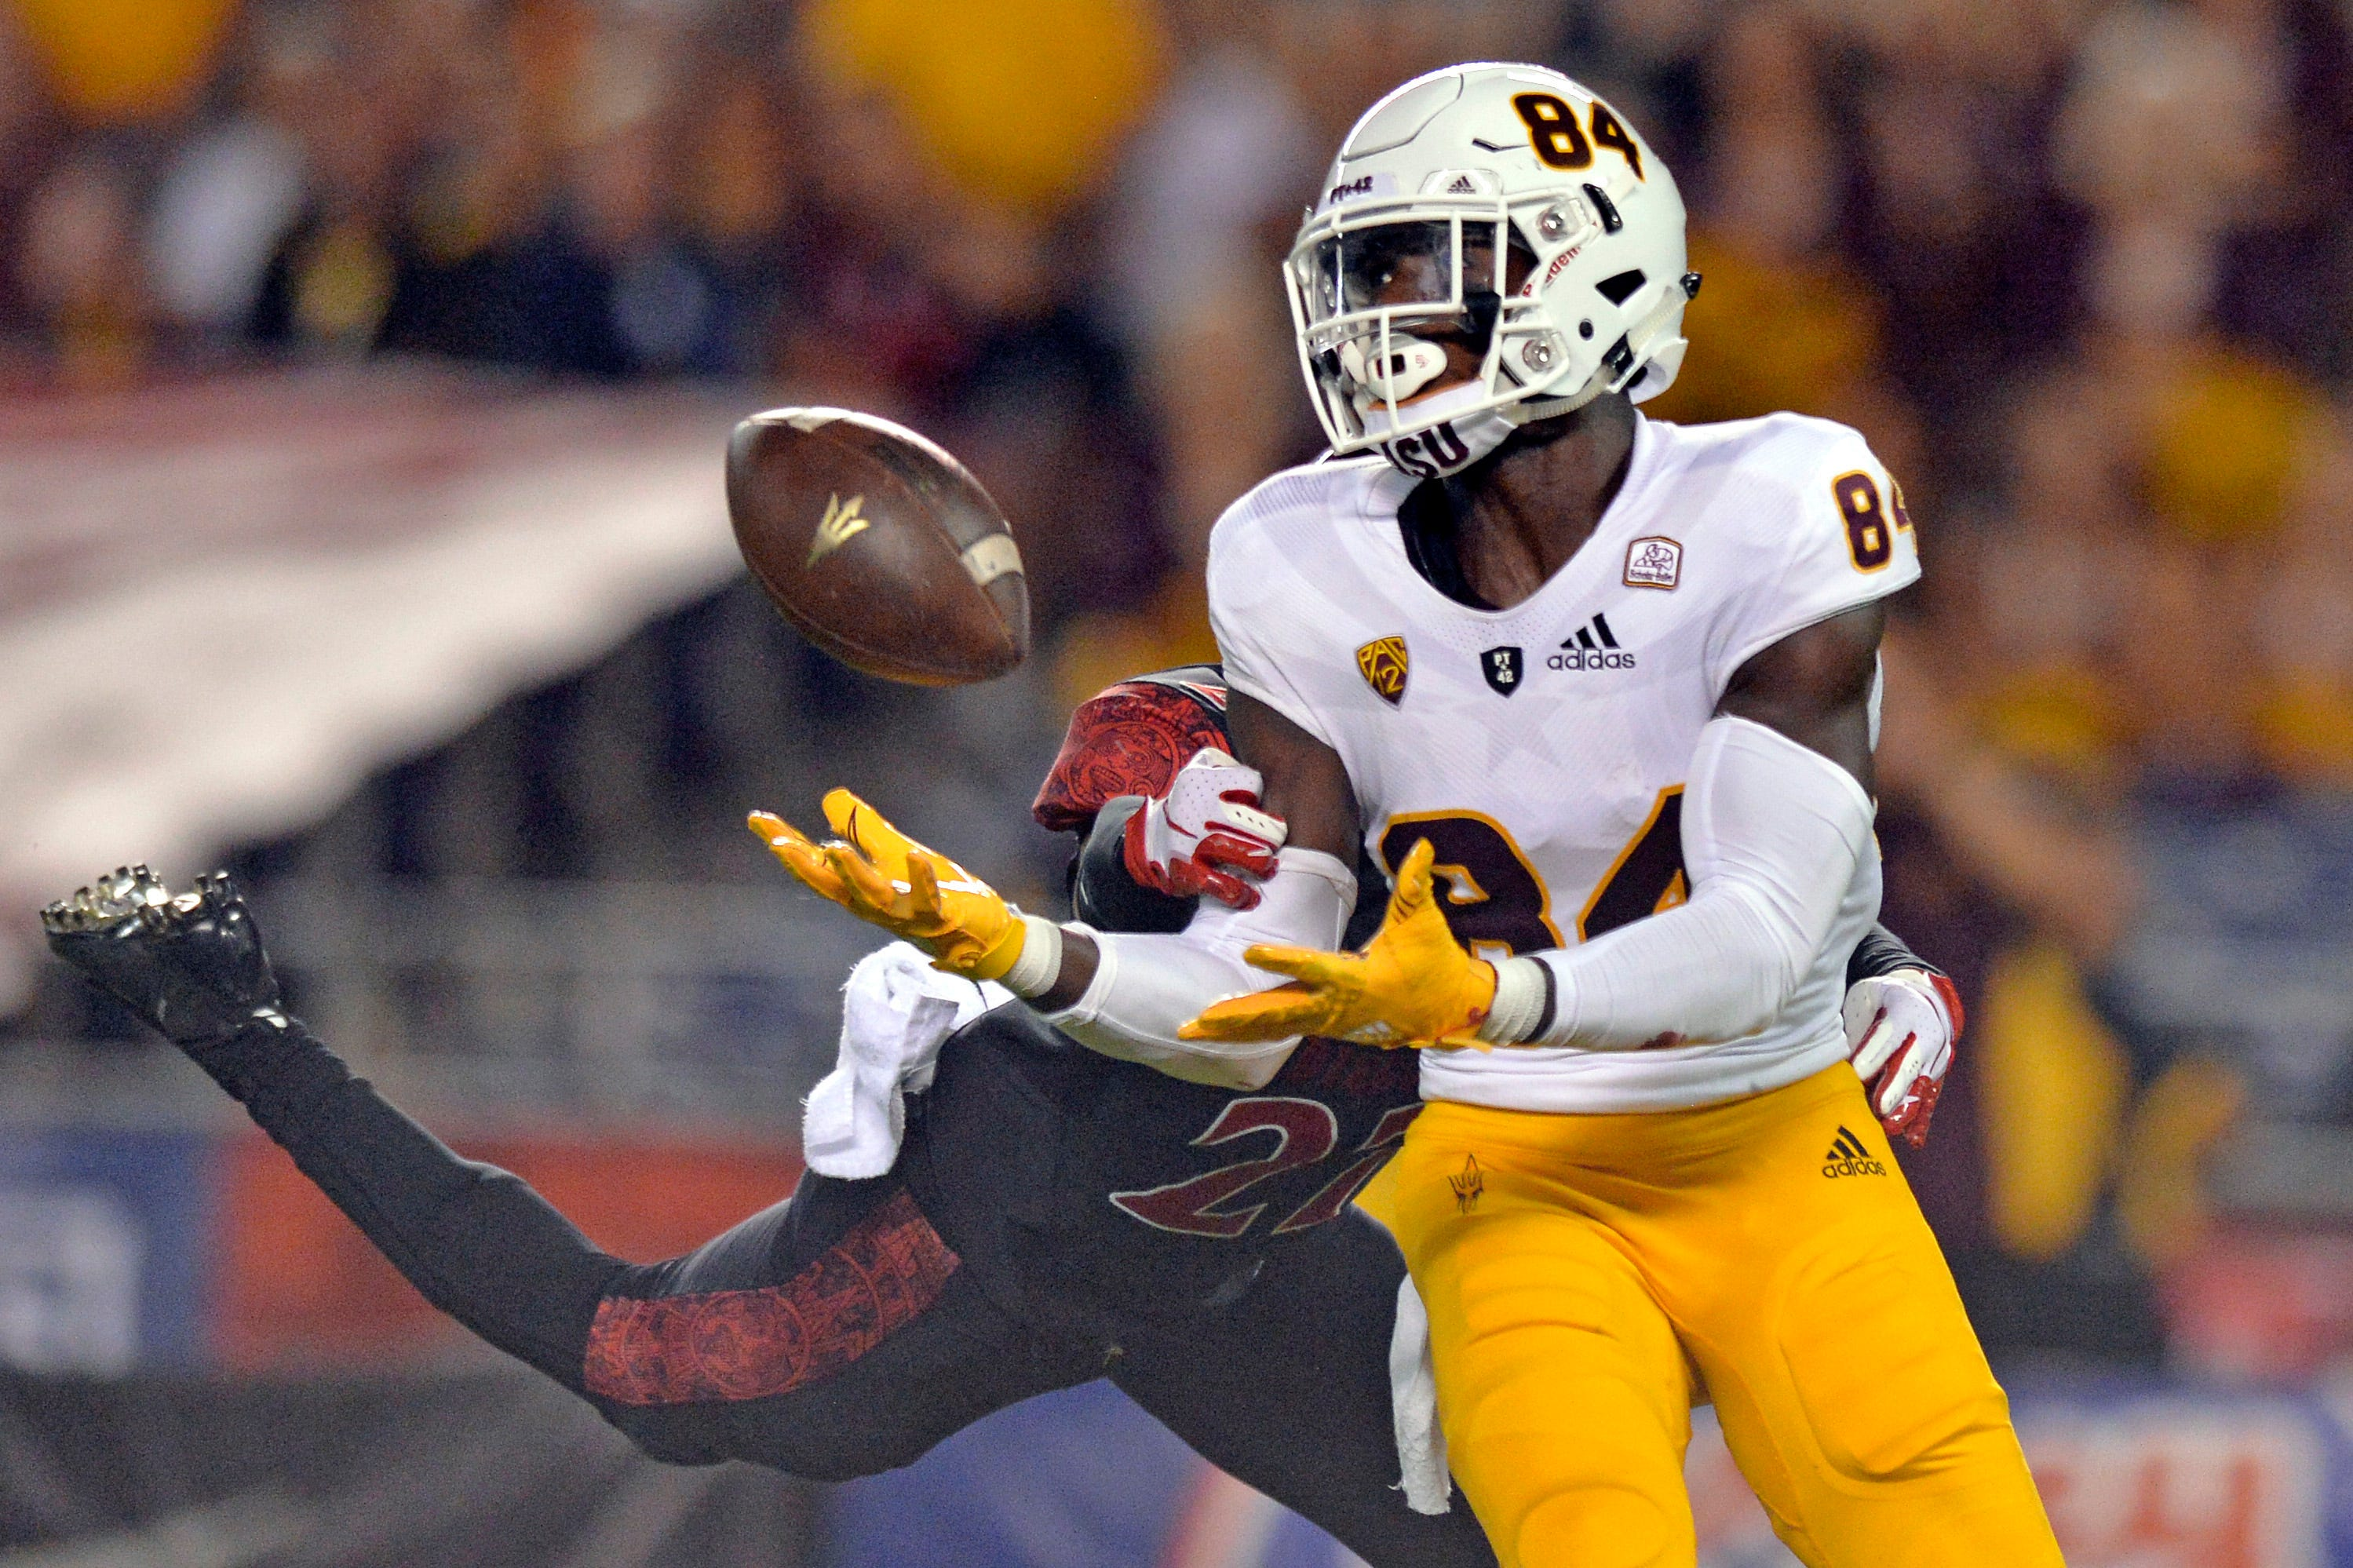 ASU football: Receiver Frank Darby becoming trusted deep threat